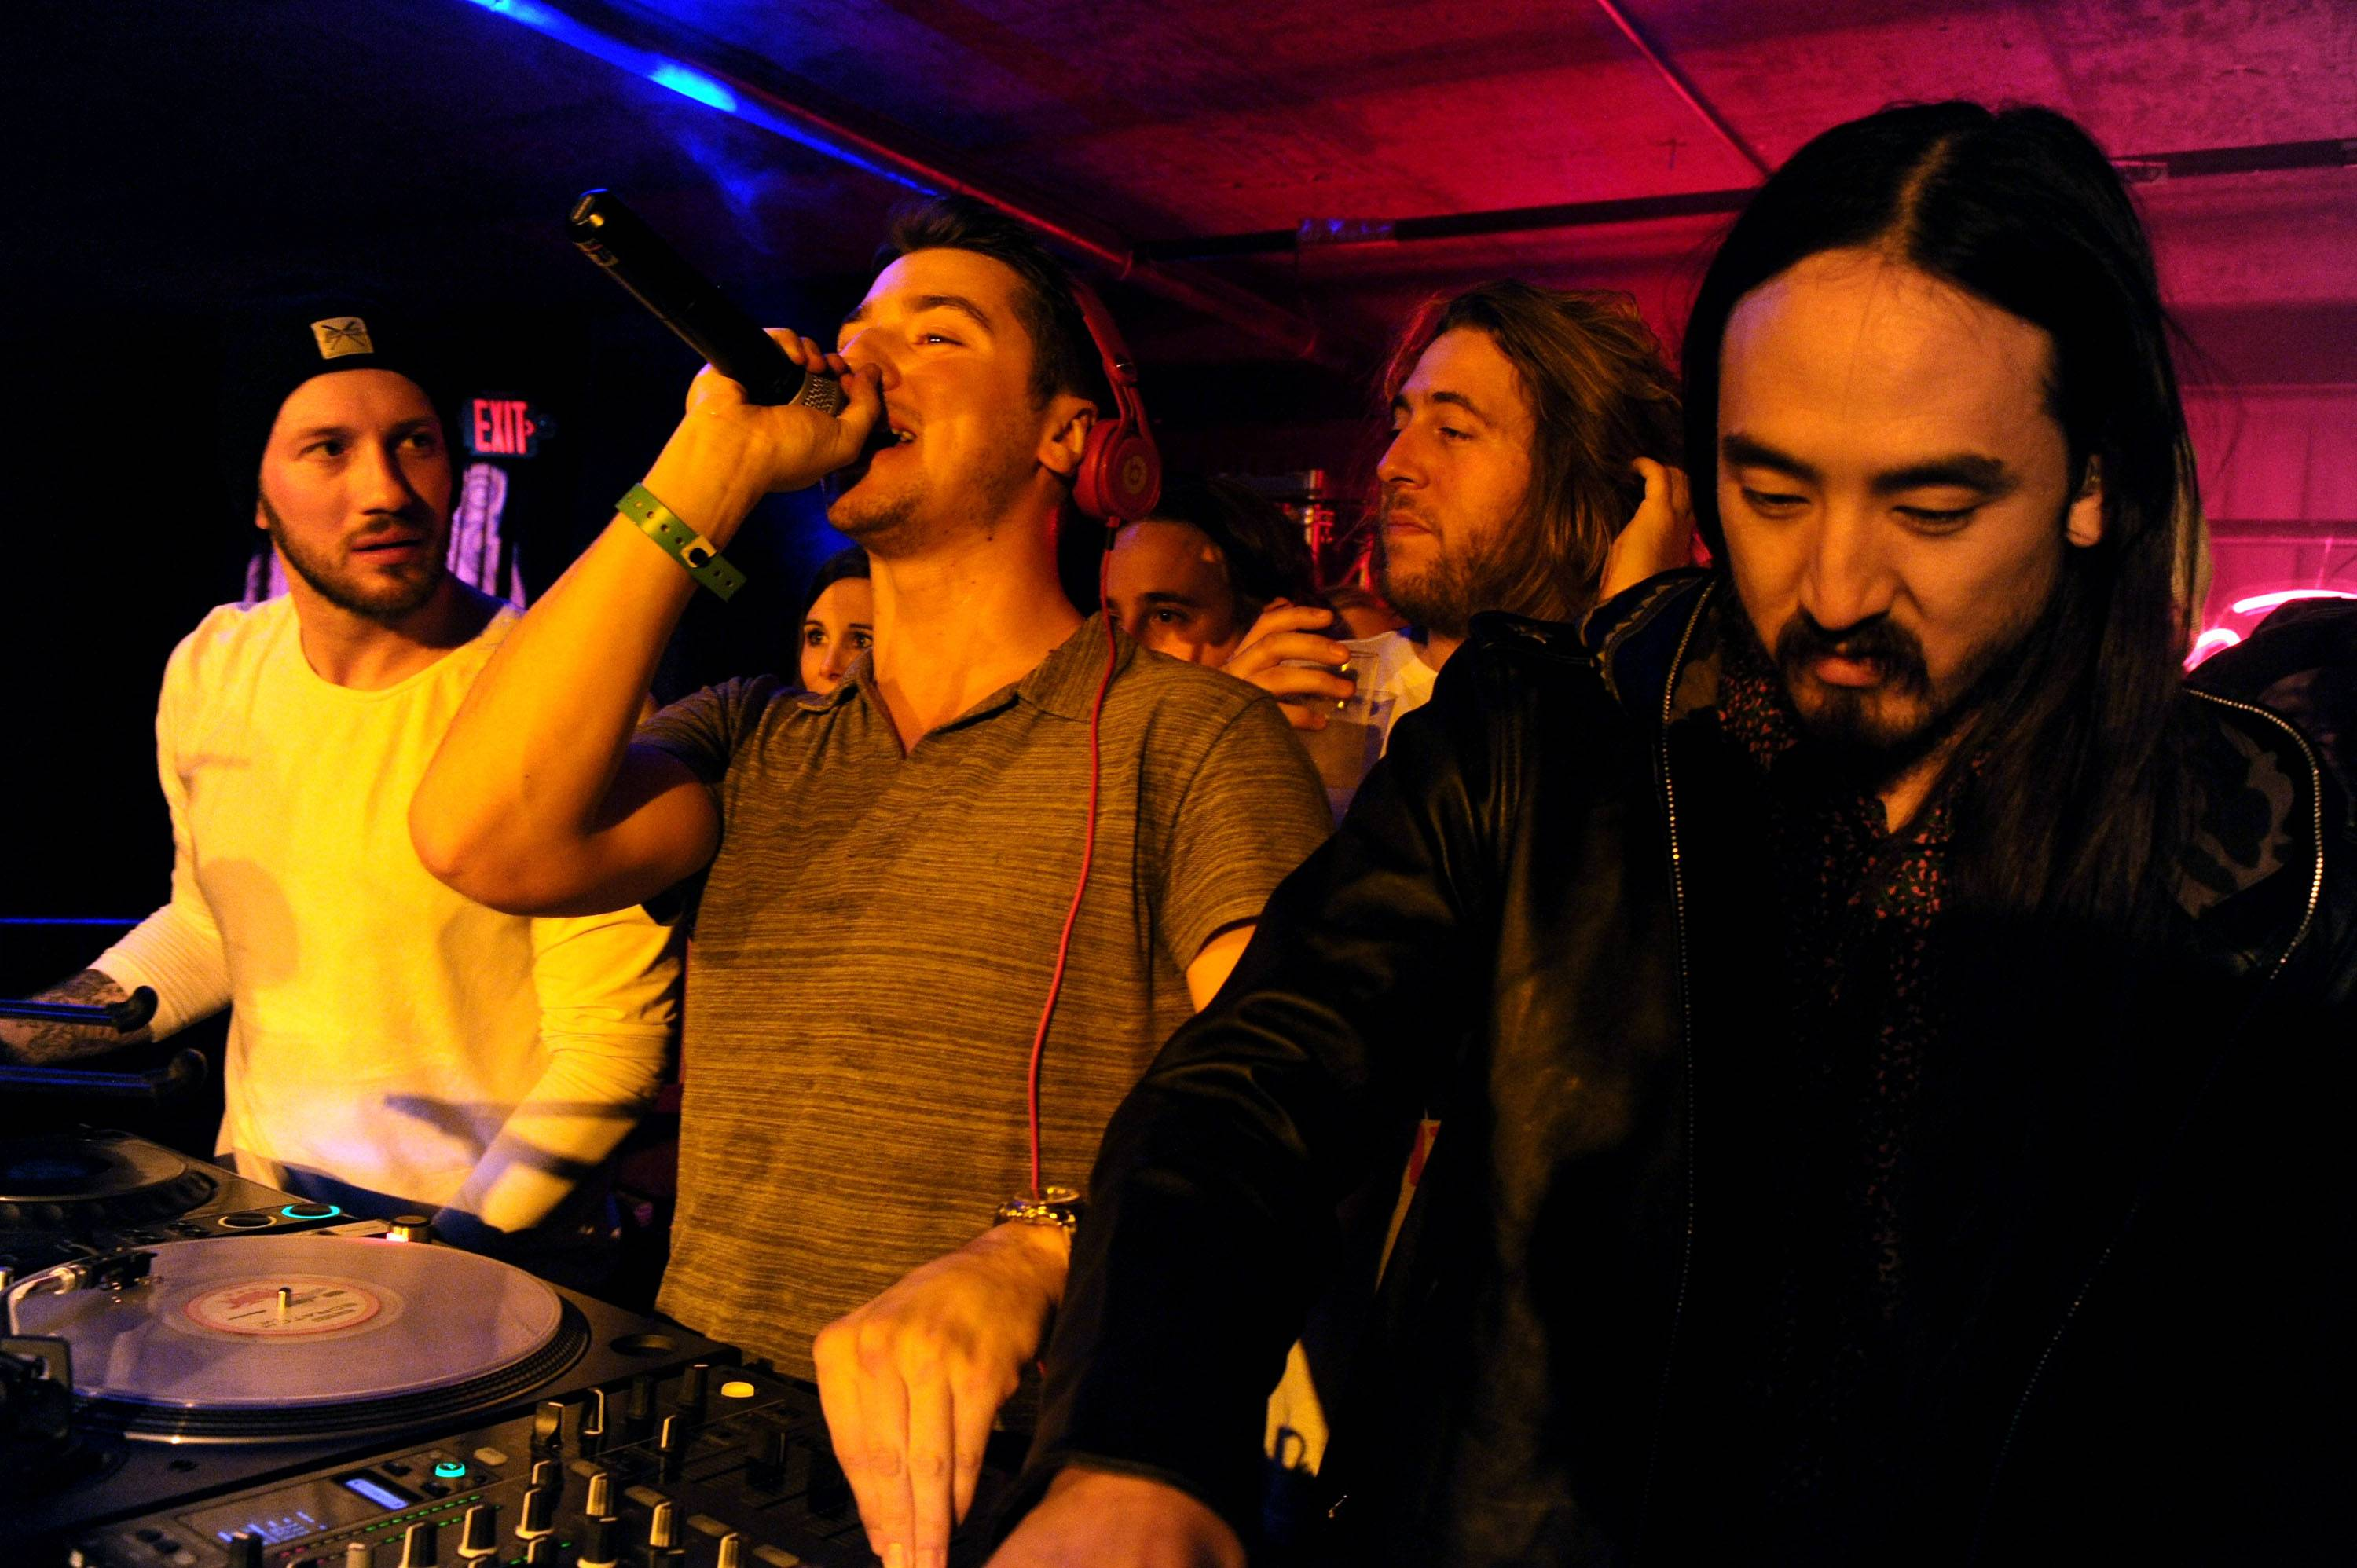 DJ Politik and Steve Aoki getting the crowd pumped up TAO at Village at the Lift night four of Sundance. Photos: Seth Browarnik/WorldRedEye.com